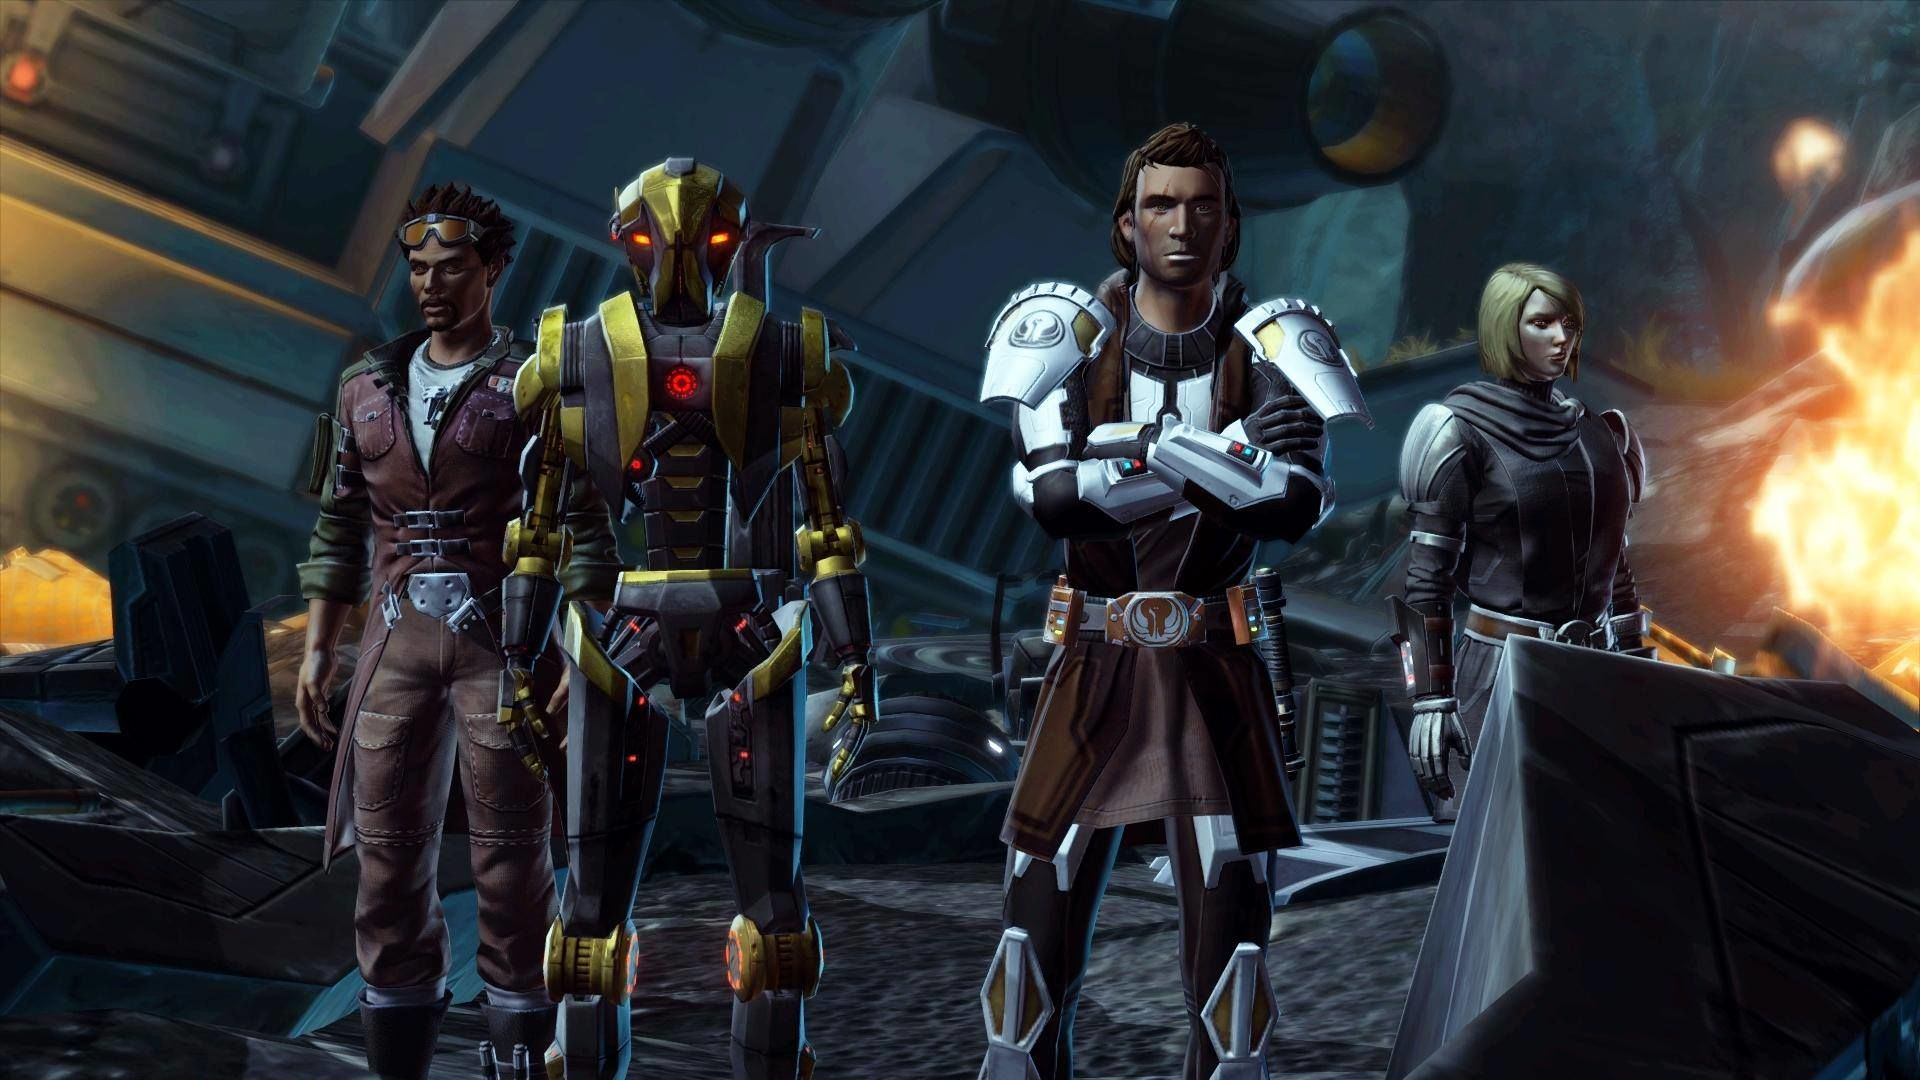 The Old Republic's newest expansion is as close to KOTOR III